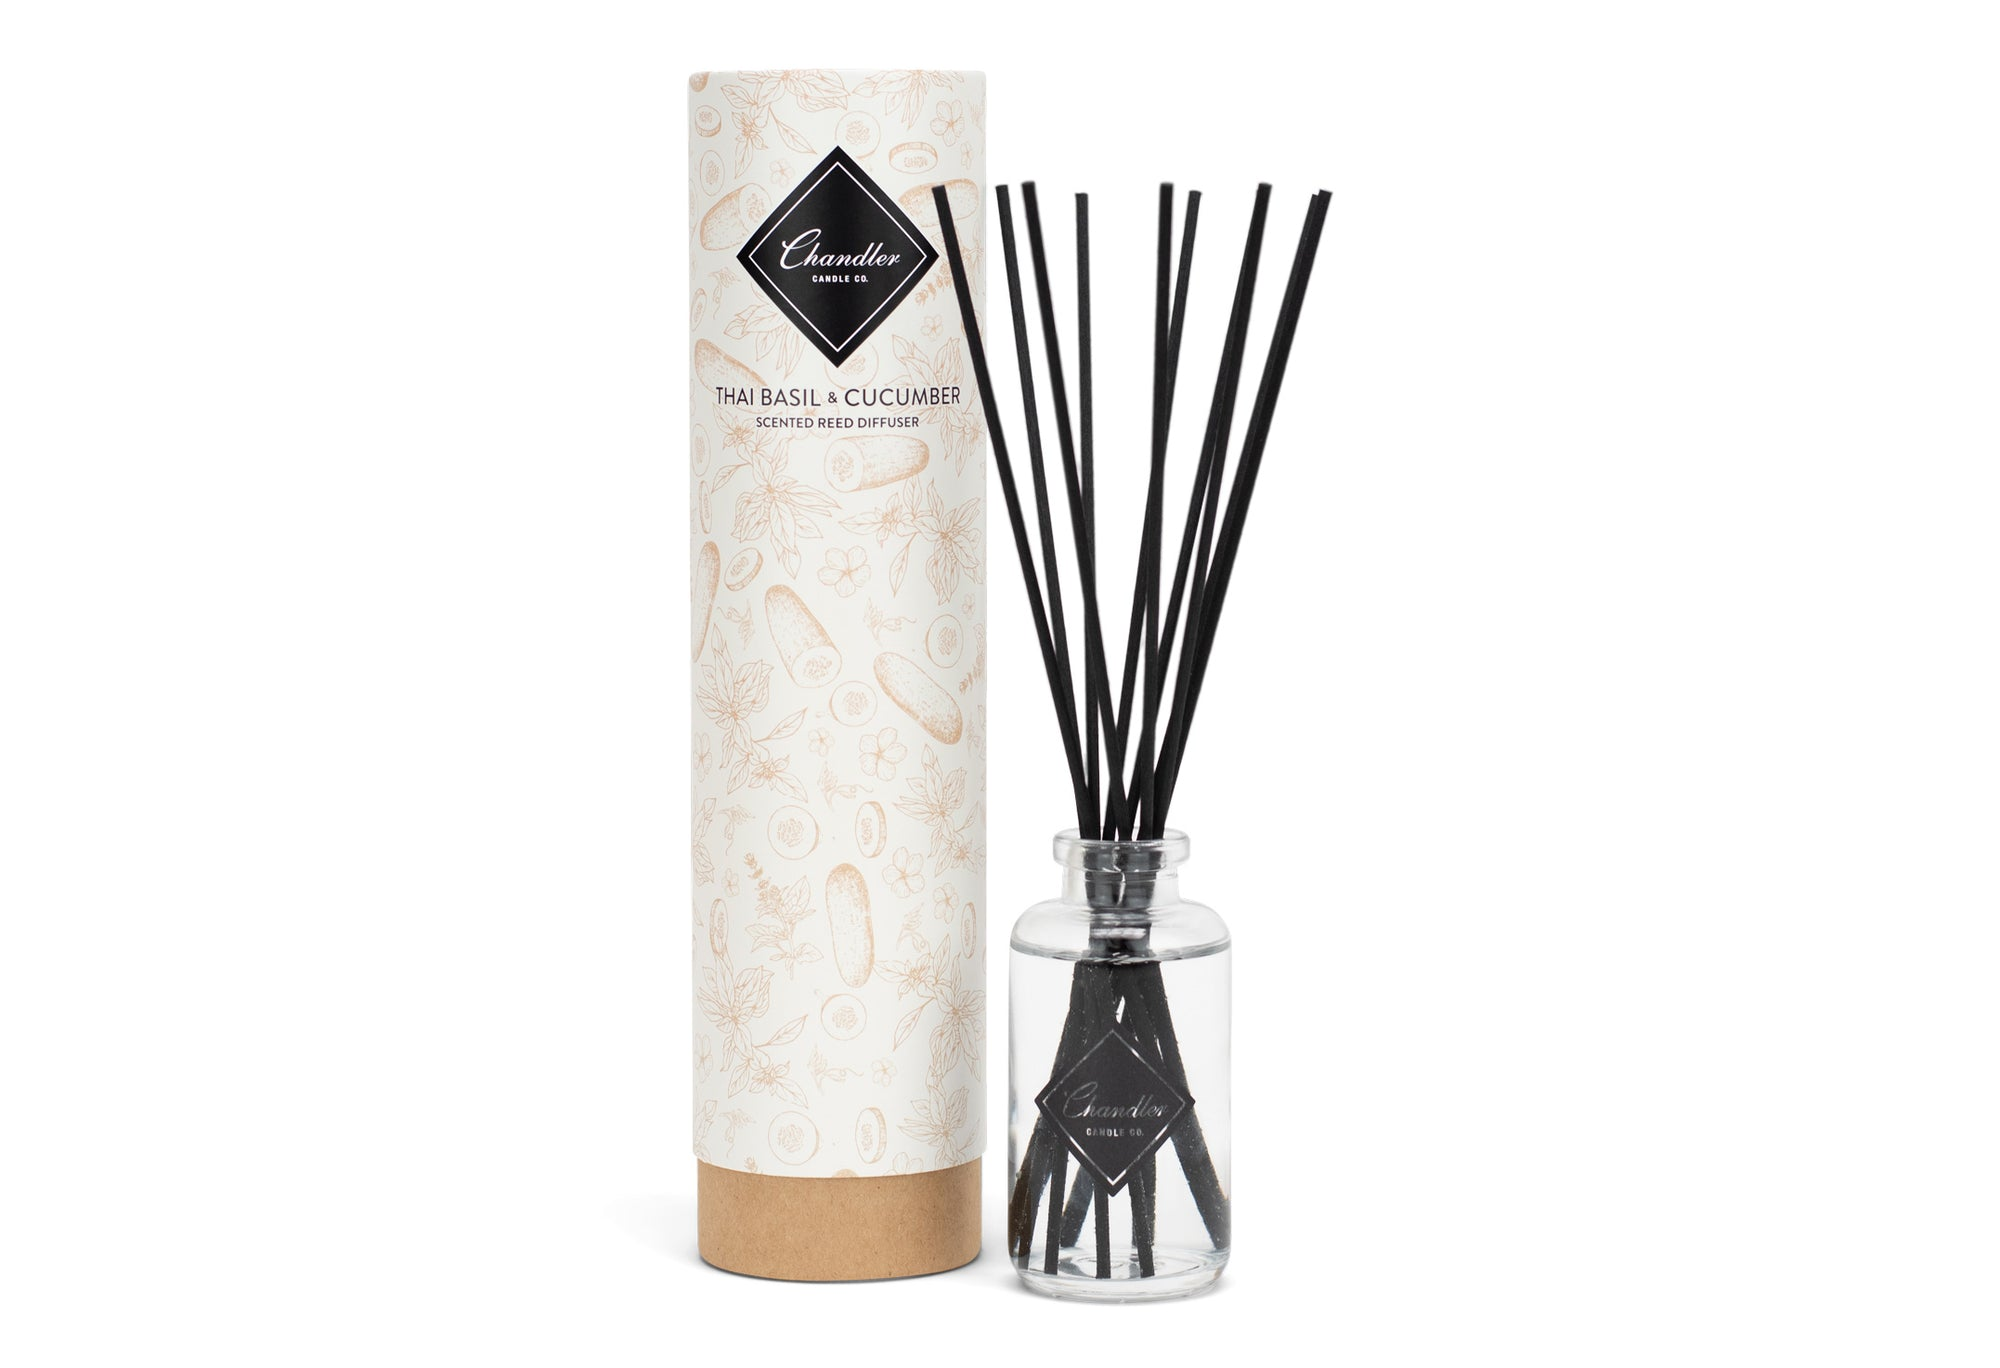 Thai Basil and Cucumber Scented Reed Diffuser